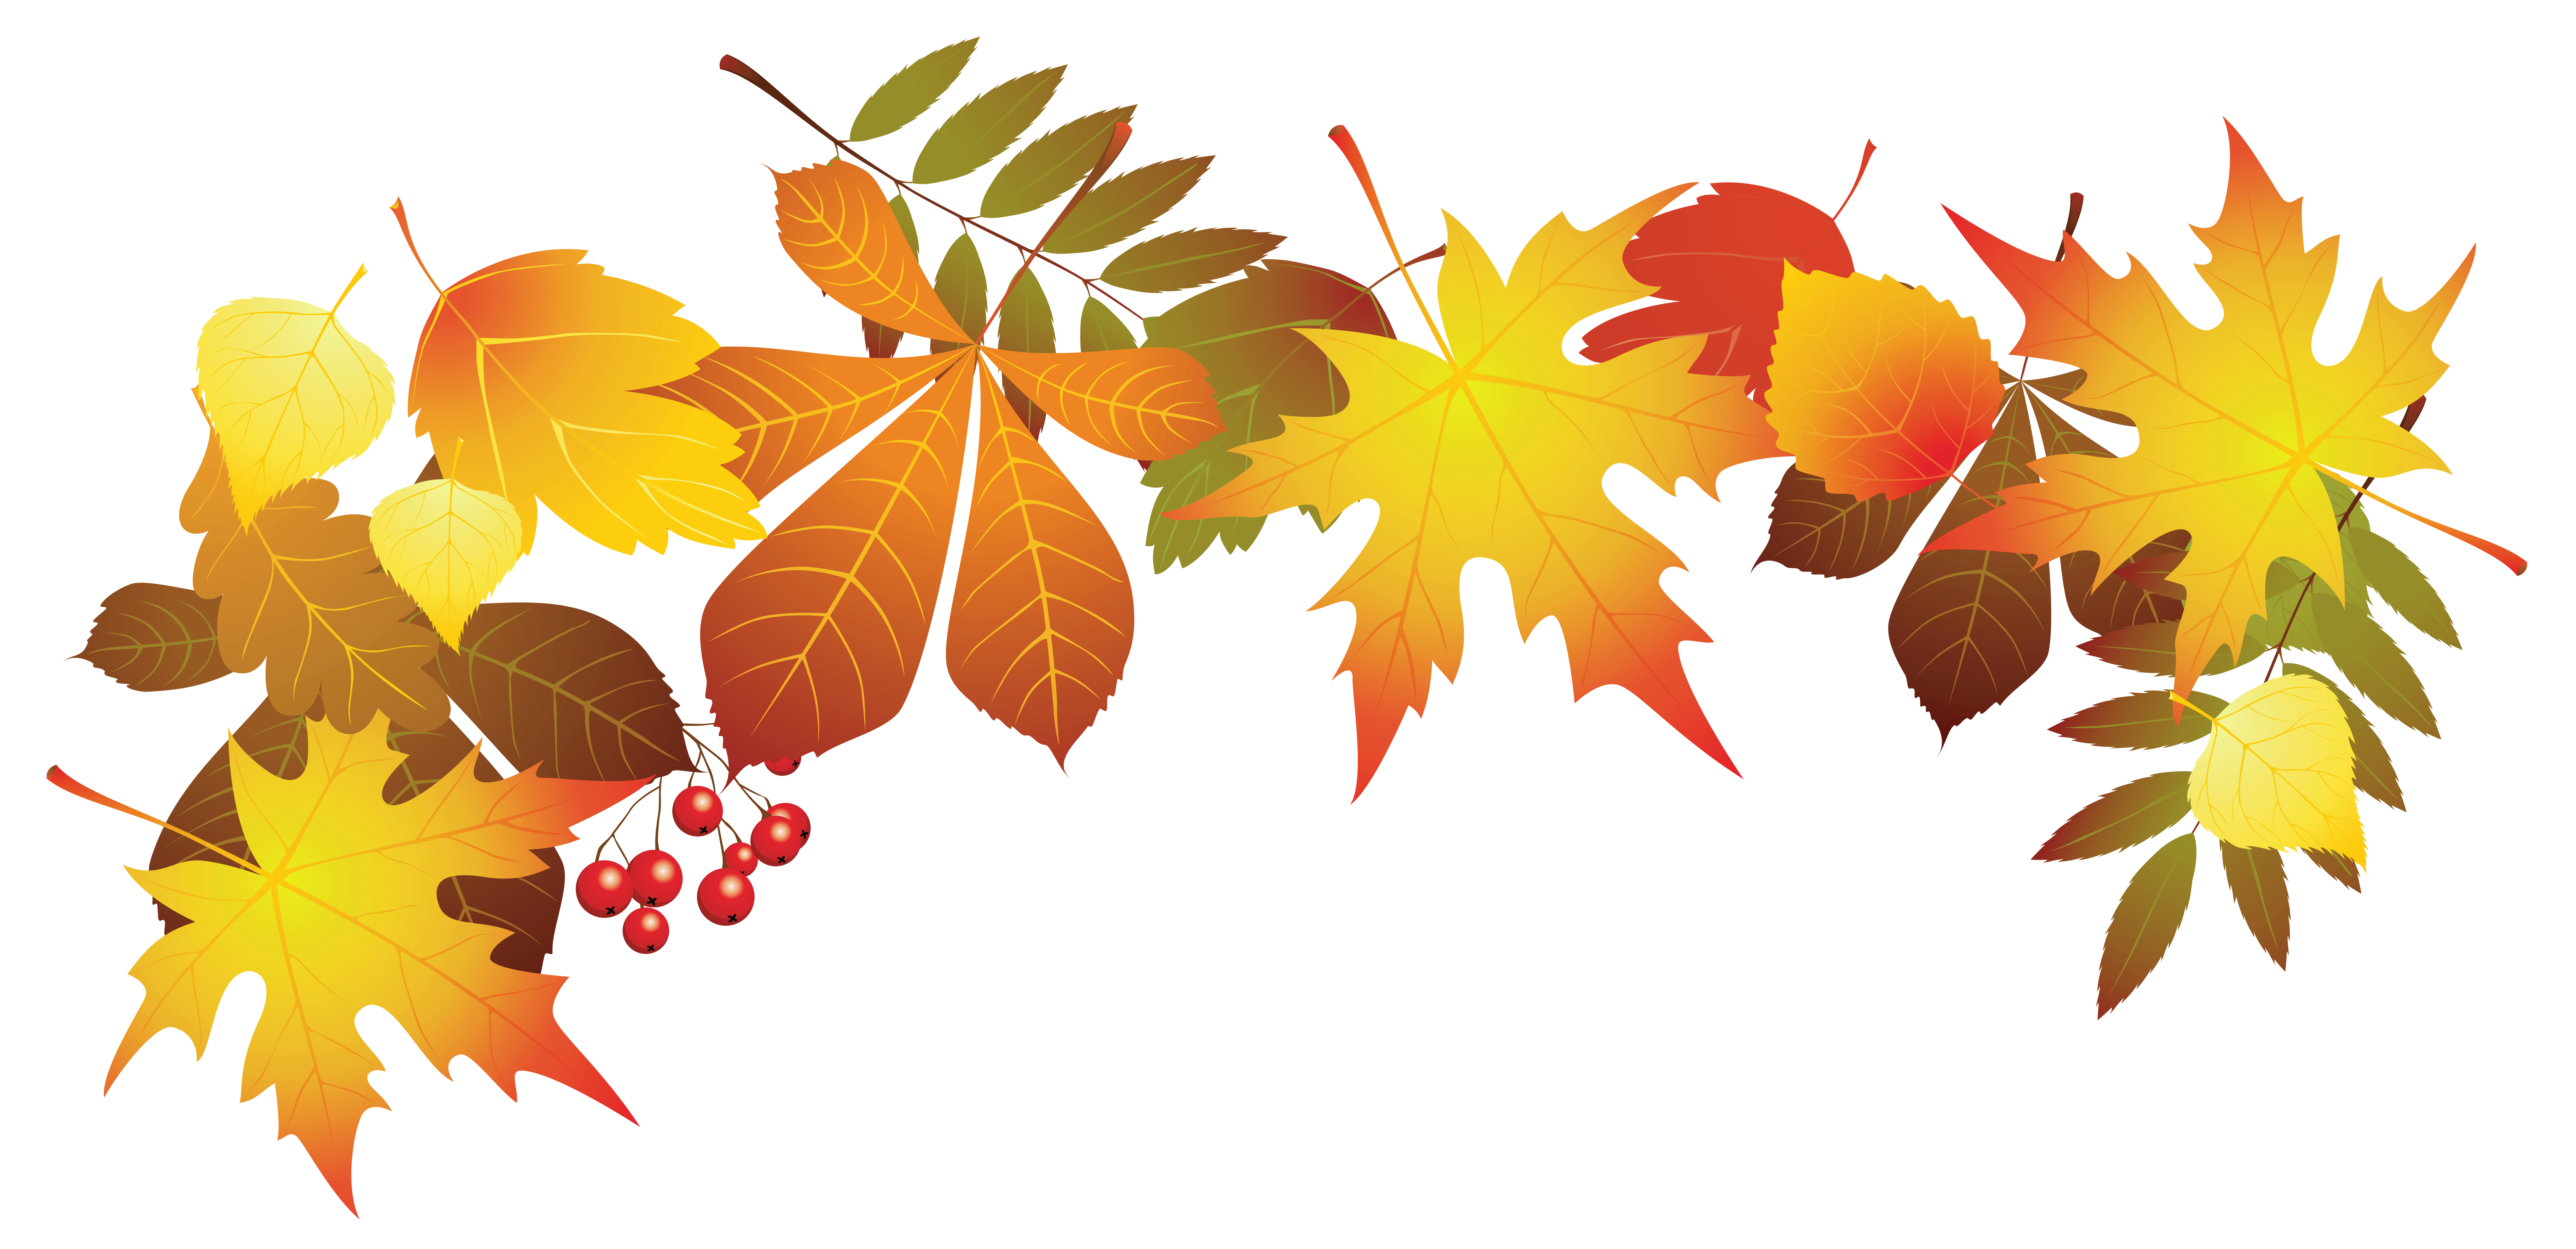 Fall leaves clipart png jpg black and white stock Autumn leaf color Clip art - Transparent Autumn Leaves Decoration ... jpg black and white stock